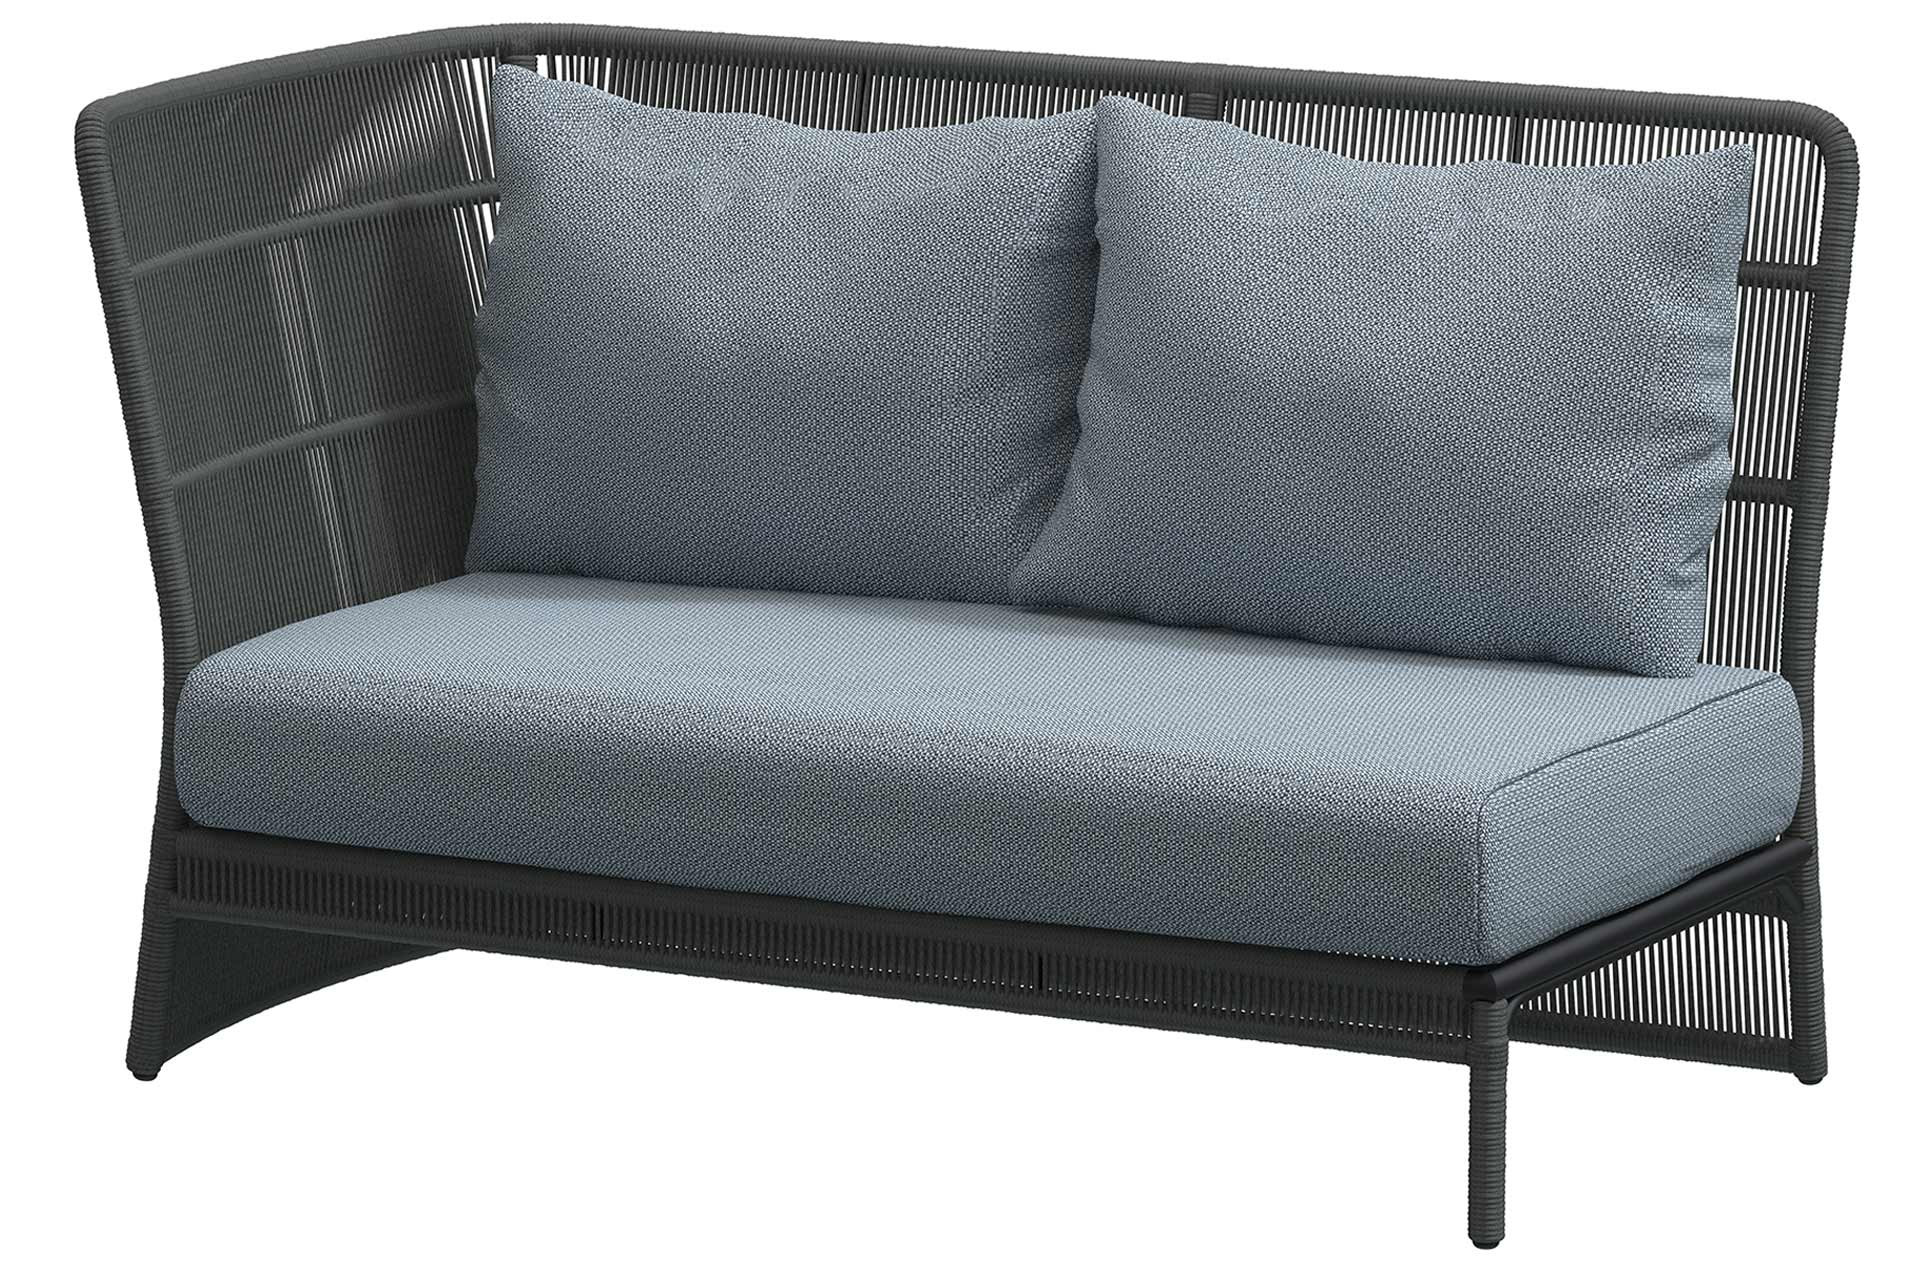 Oriënt Modular 2 seater right arm Platinum with 3 cushions